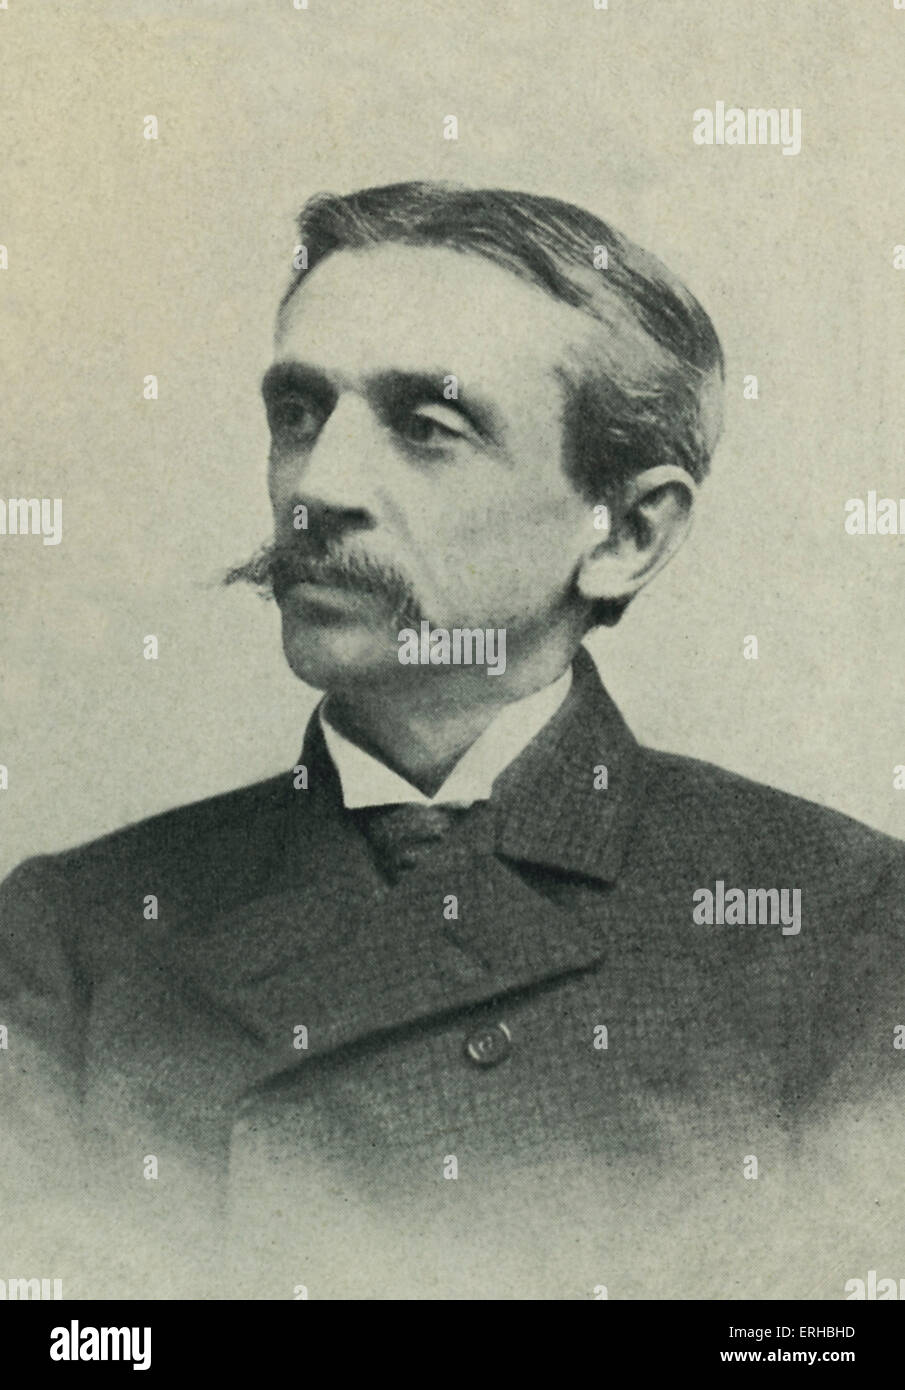 Frank Richard Stockton (1834 – 1902) - American writer and humorist. Stock Photo